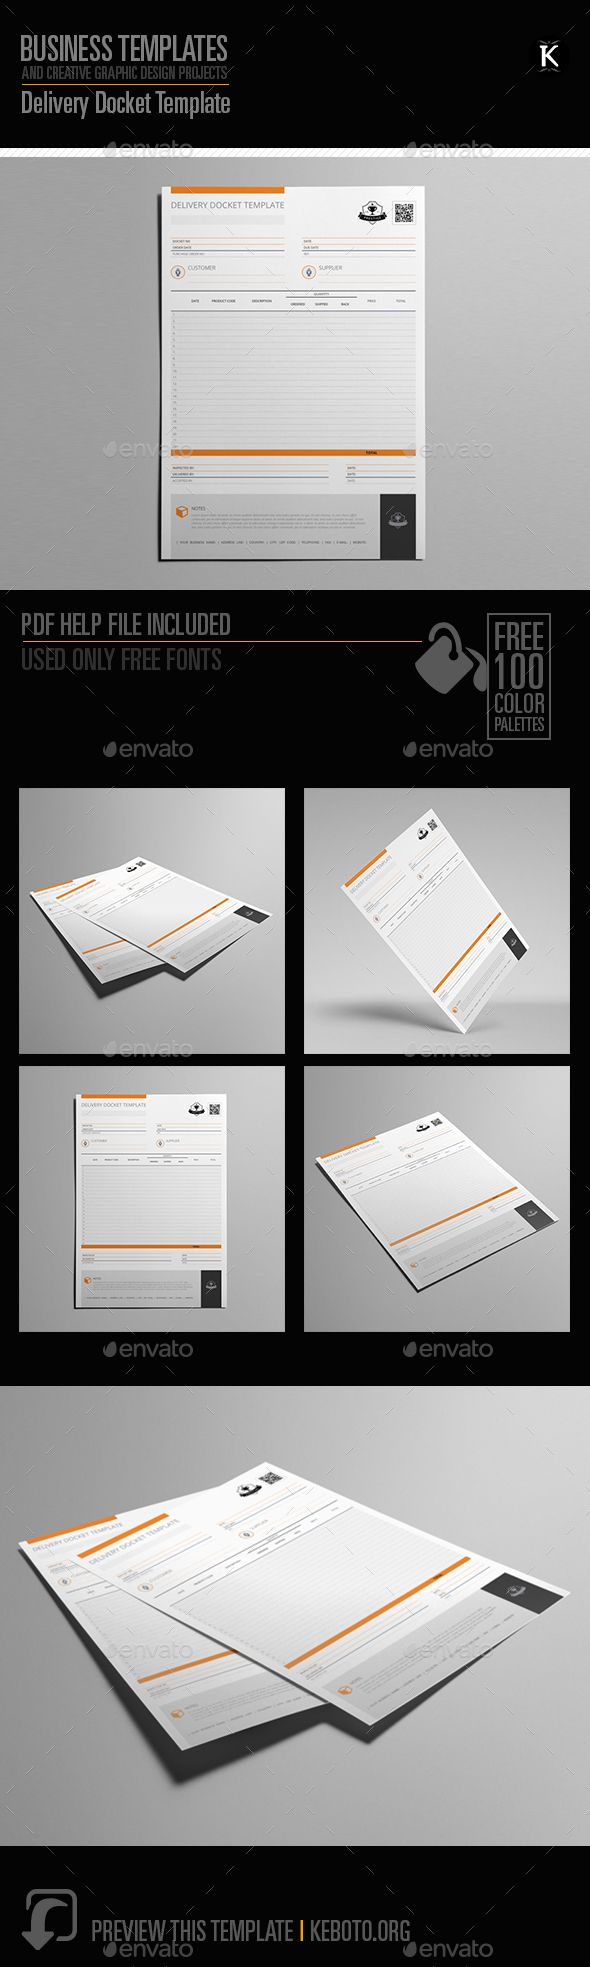 Delivery Docket #Template - #Miscellaneous Print #Templates Download here:   https://graphicriver.net/item/delivery-docket-template/20288654?ref=alena994